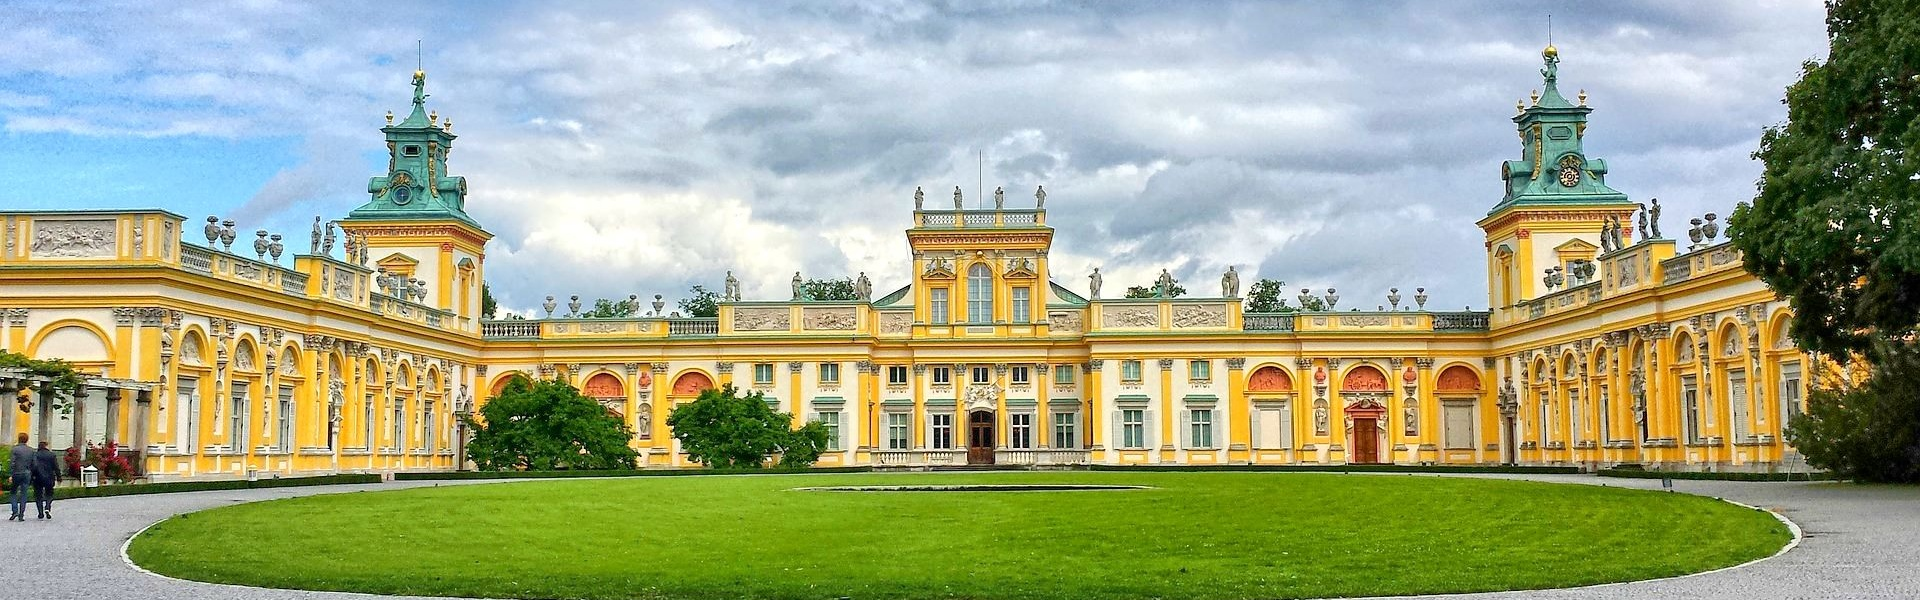 Warsaw, Wilanow Palace